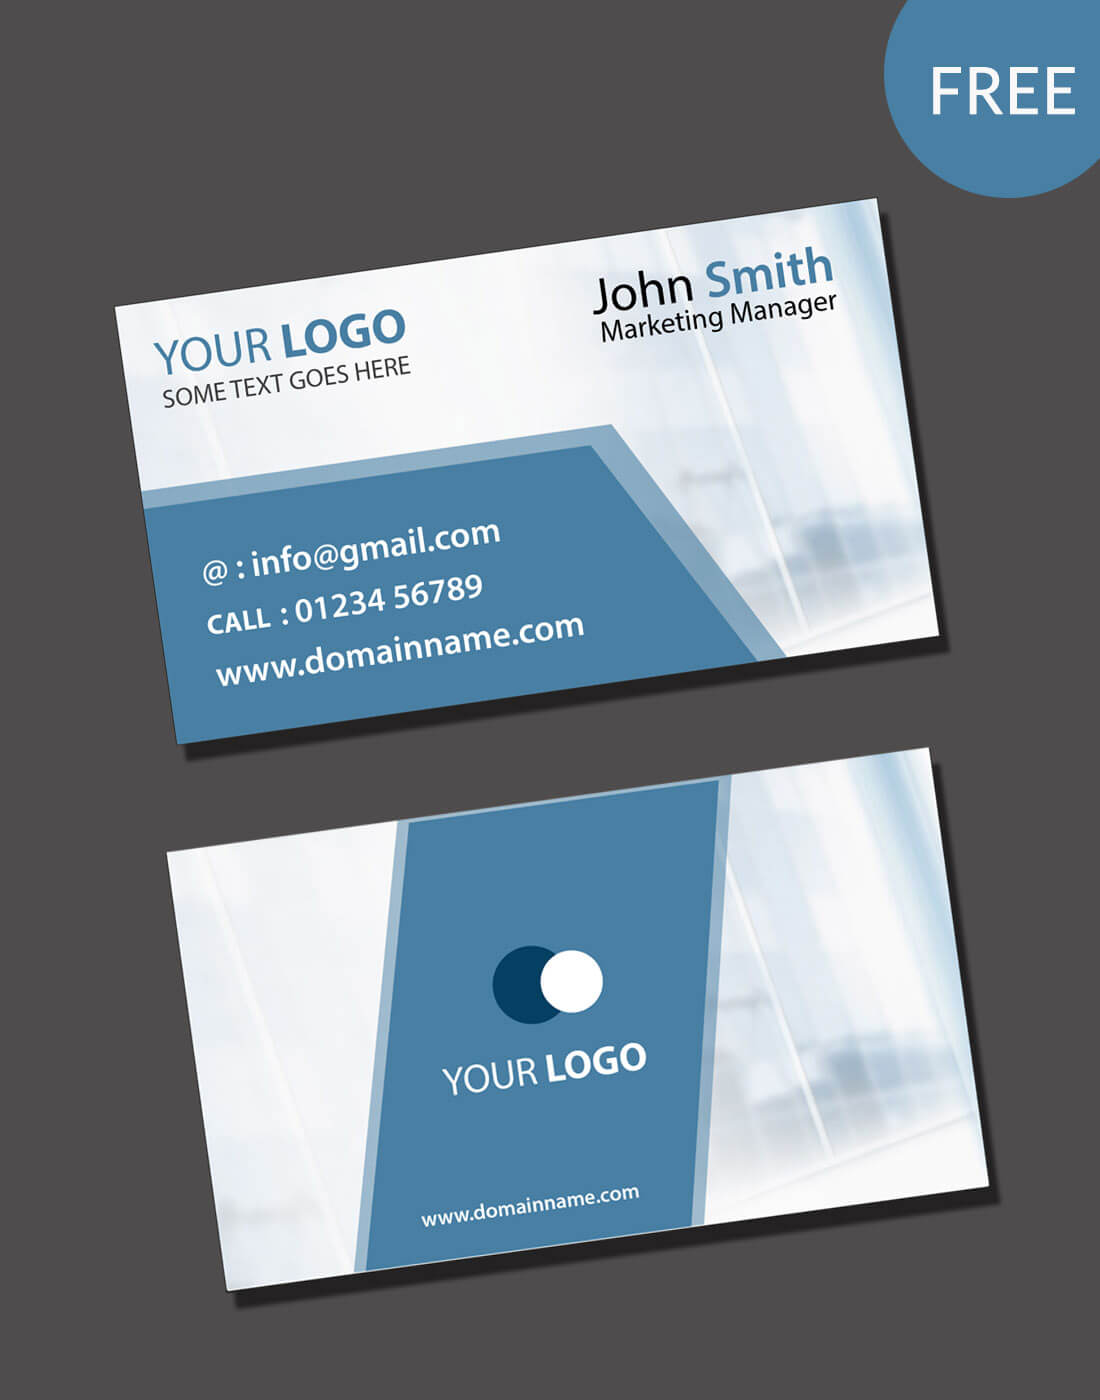 Visiting Card Psd Template Free Download Regarding Visiting Card Psd Template Free Download